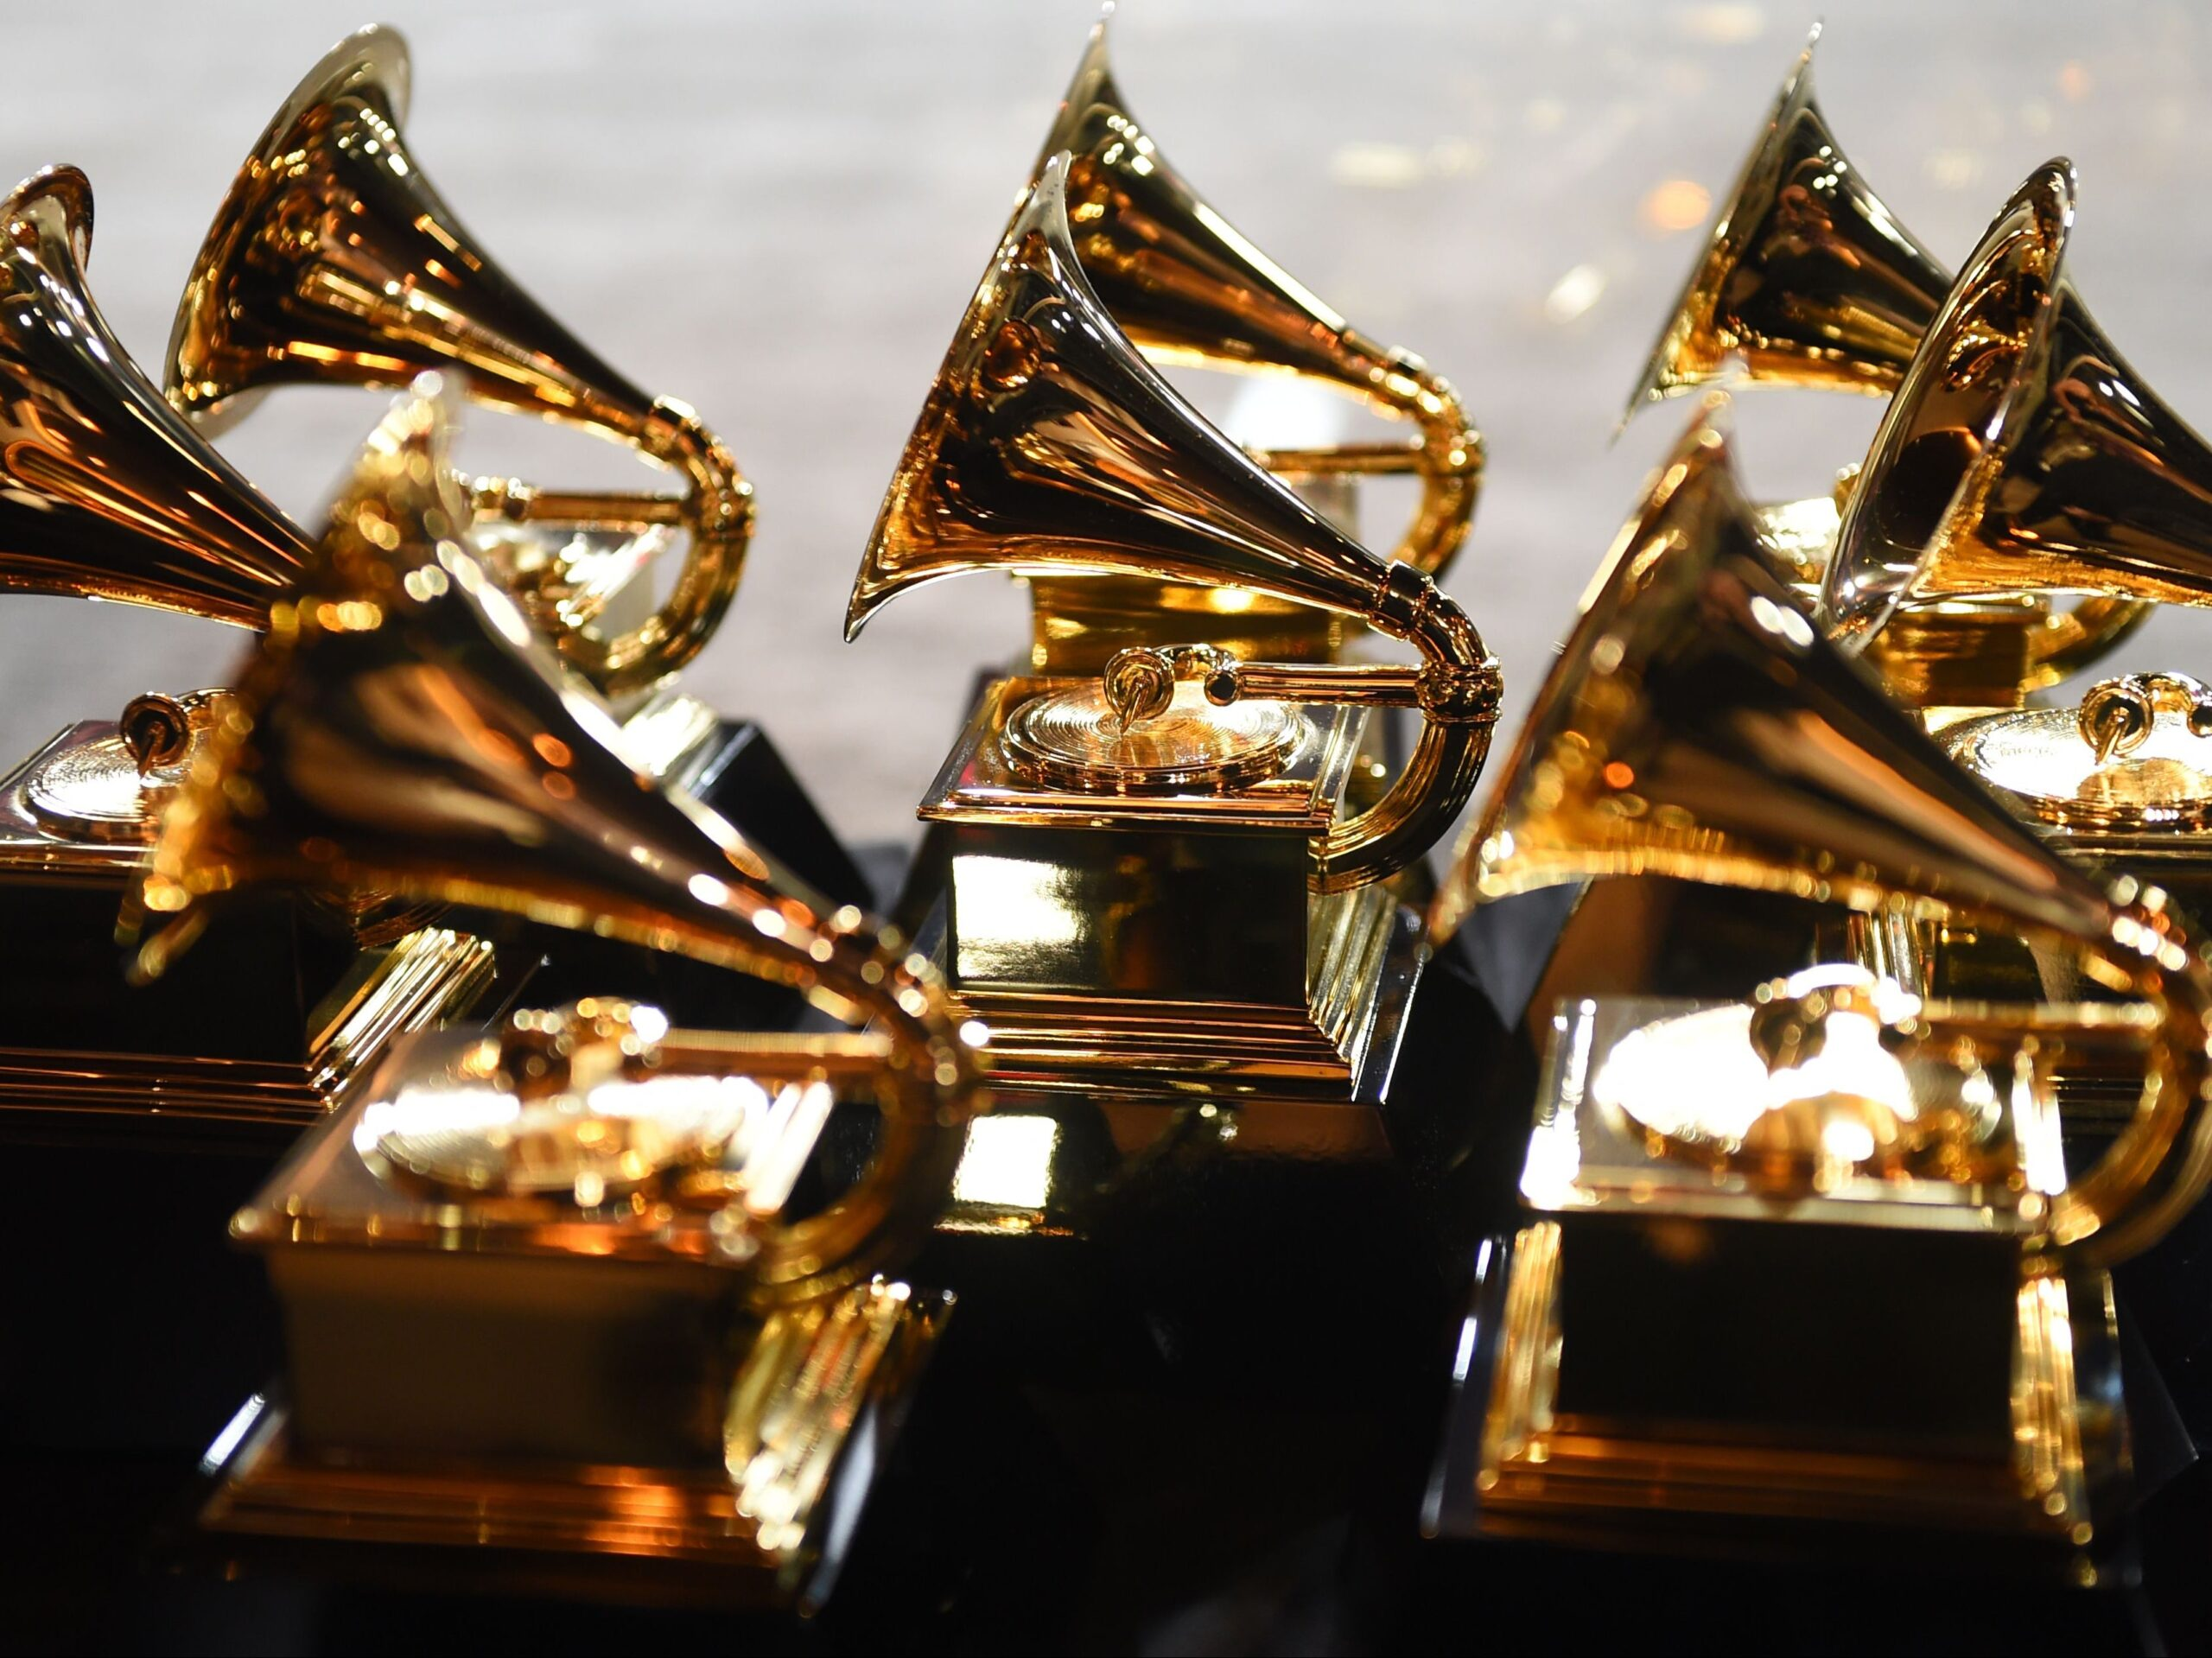 2021 Grammy Awards postponed due to Covid concerns